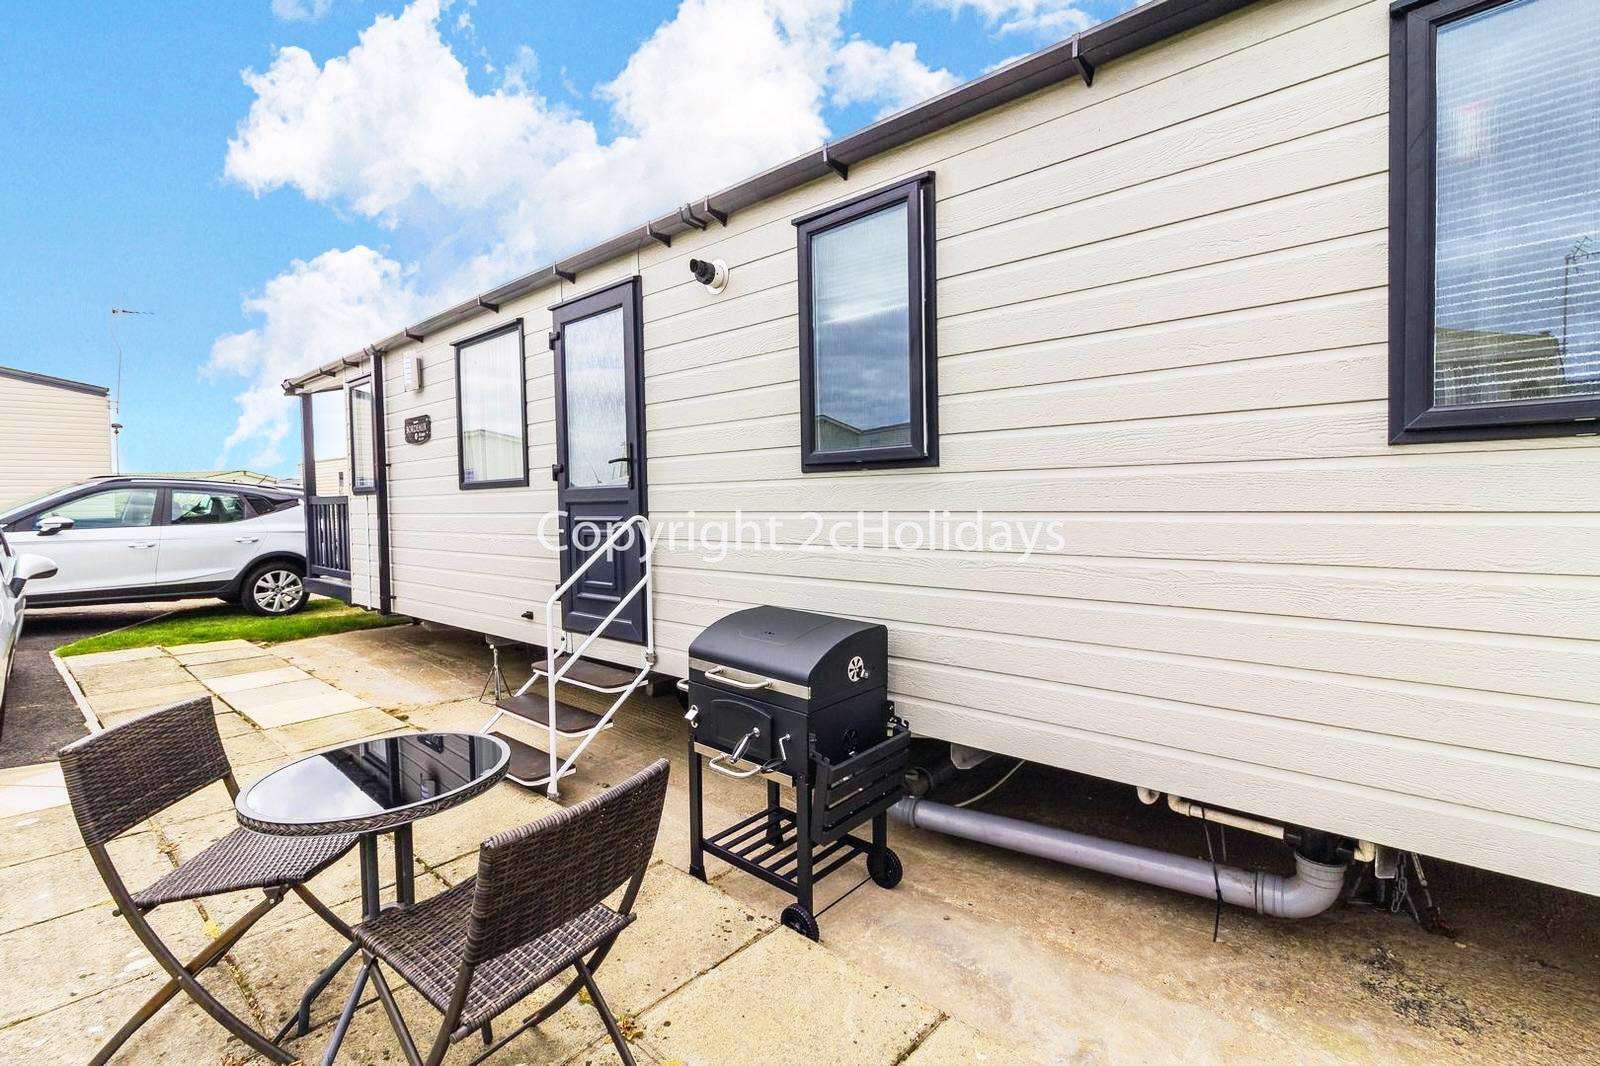 Relax and enjoy the use of outdoor furniture at this mobile home!